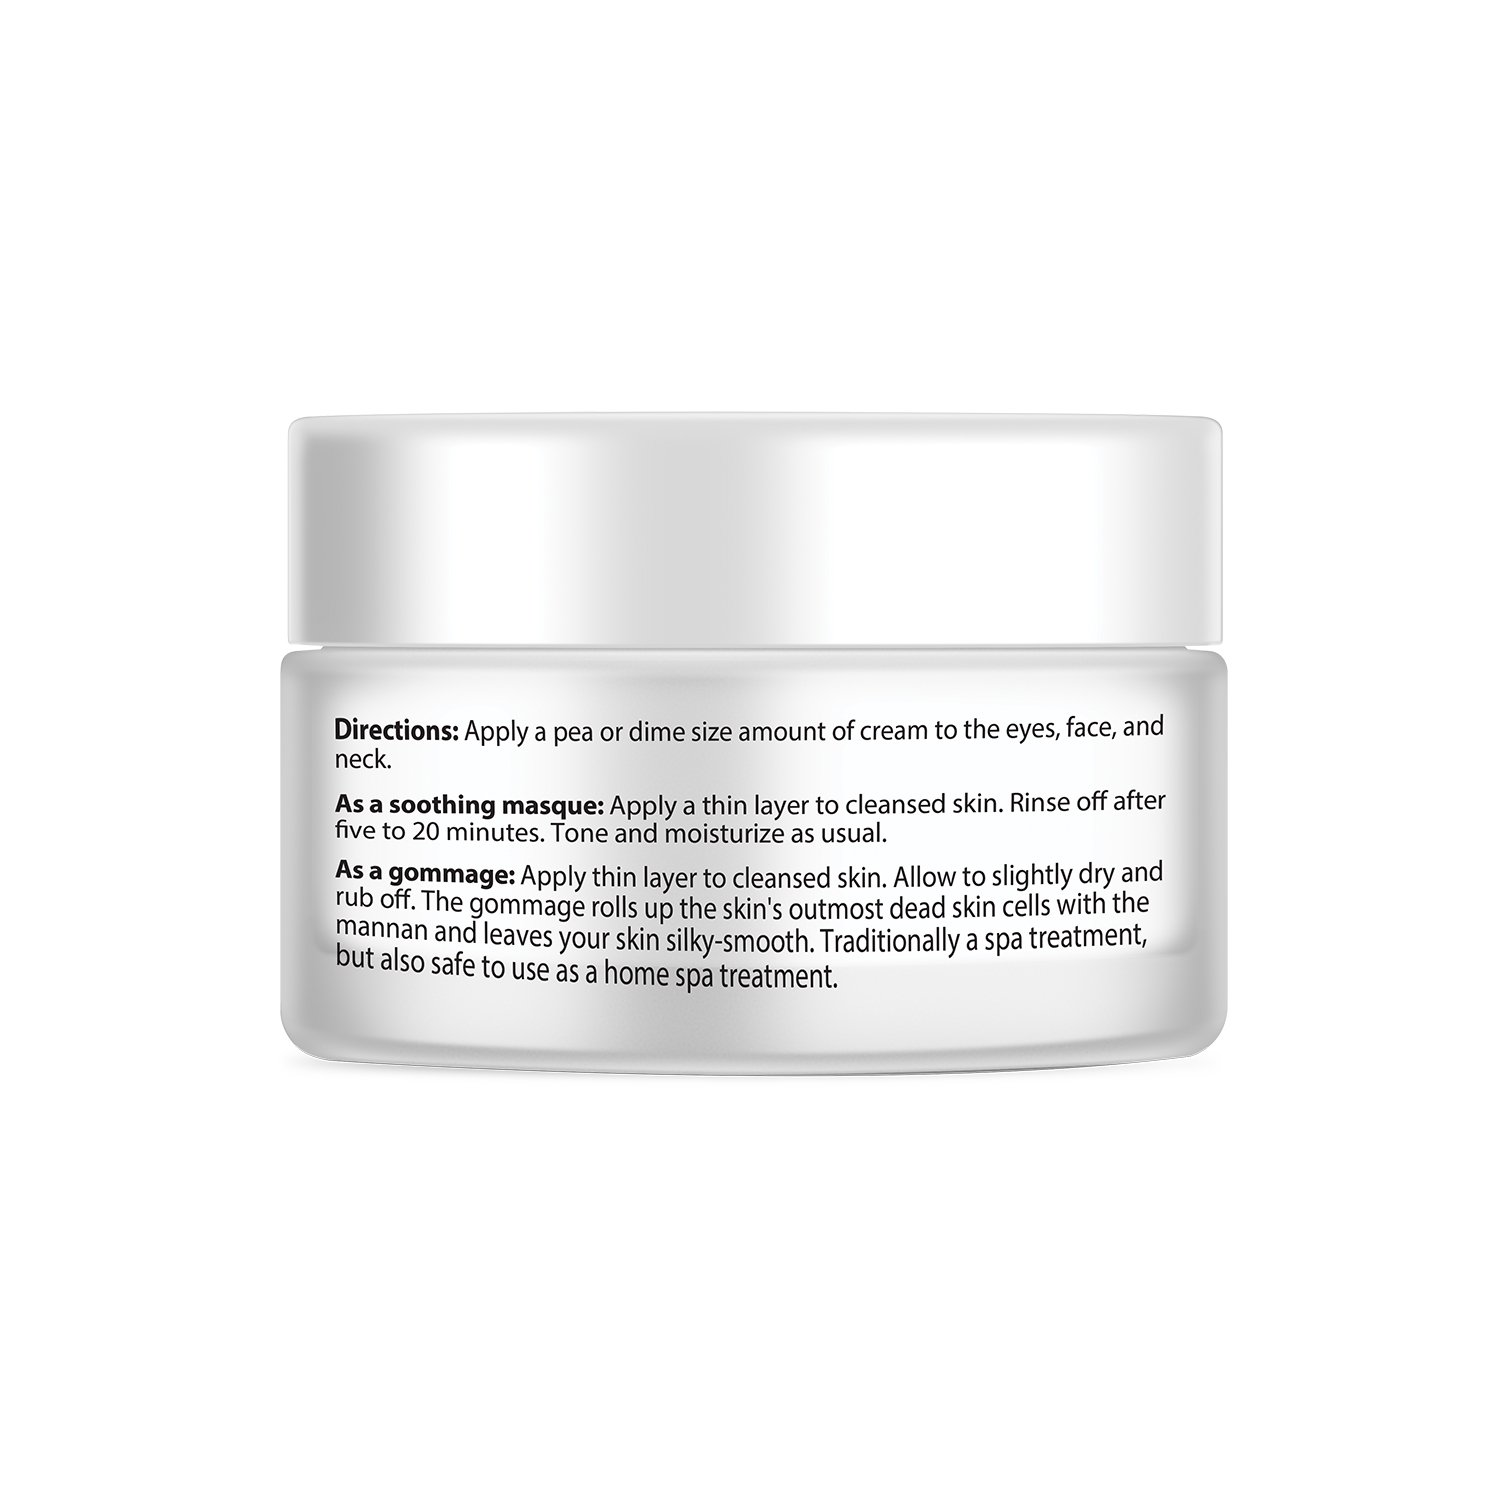 Mask-gommage - what it is and why use the mask-gommage Avon with Dead Sea minerals 74